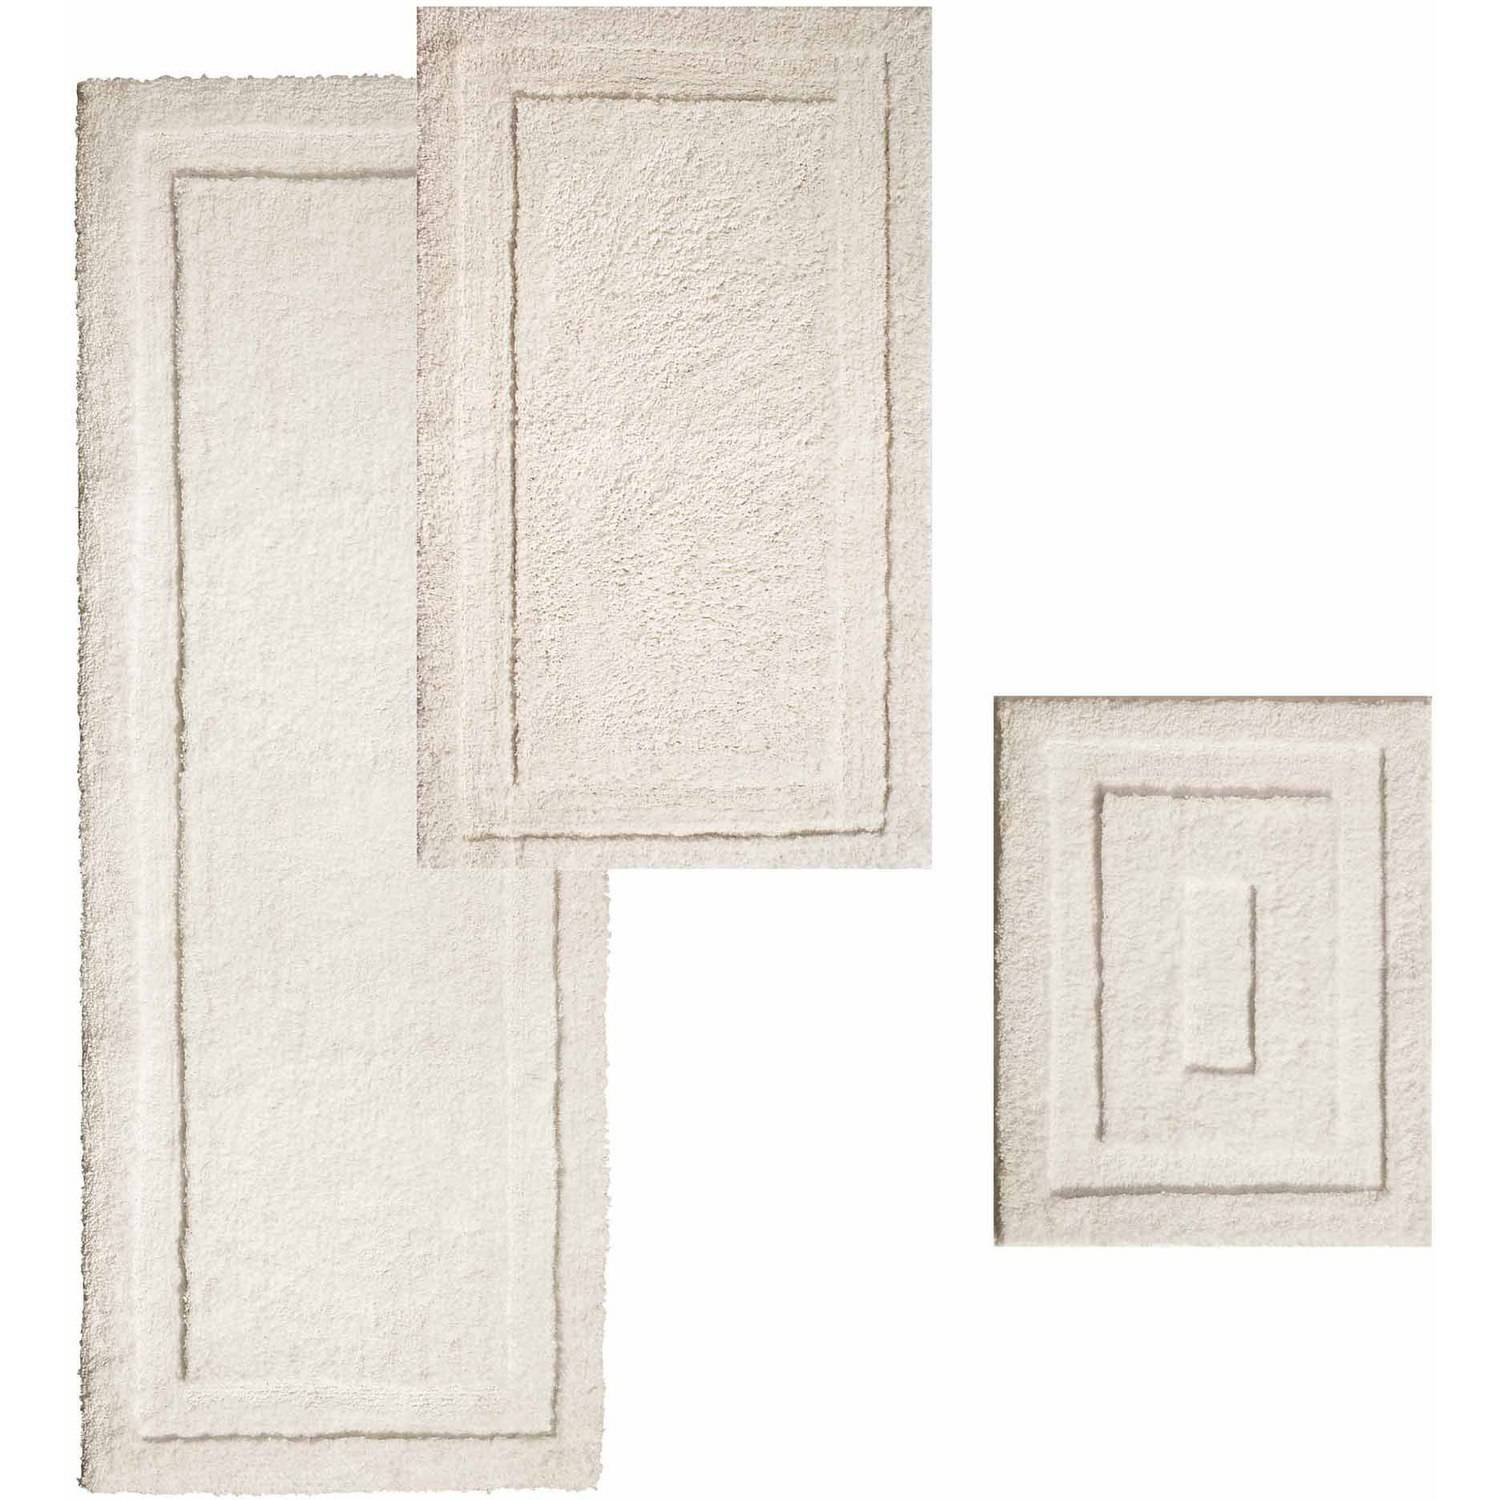 InterDesign Spa Bath Rug 21x17 Walmart com. Spa Bathroom Rugs